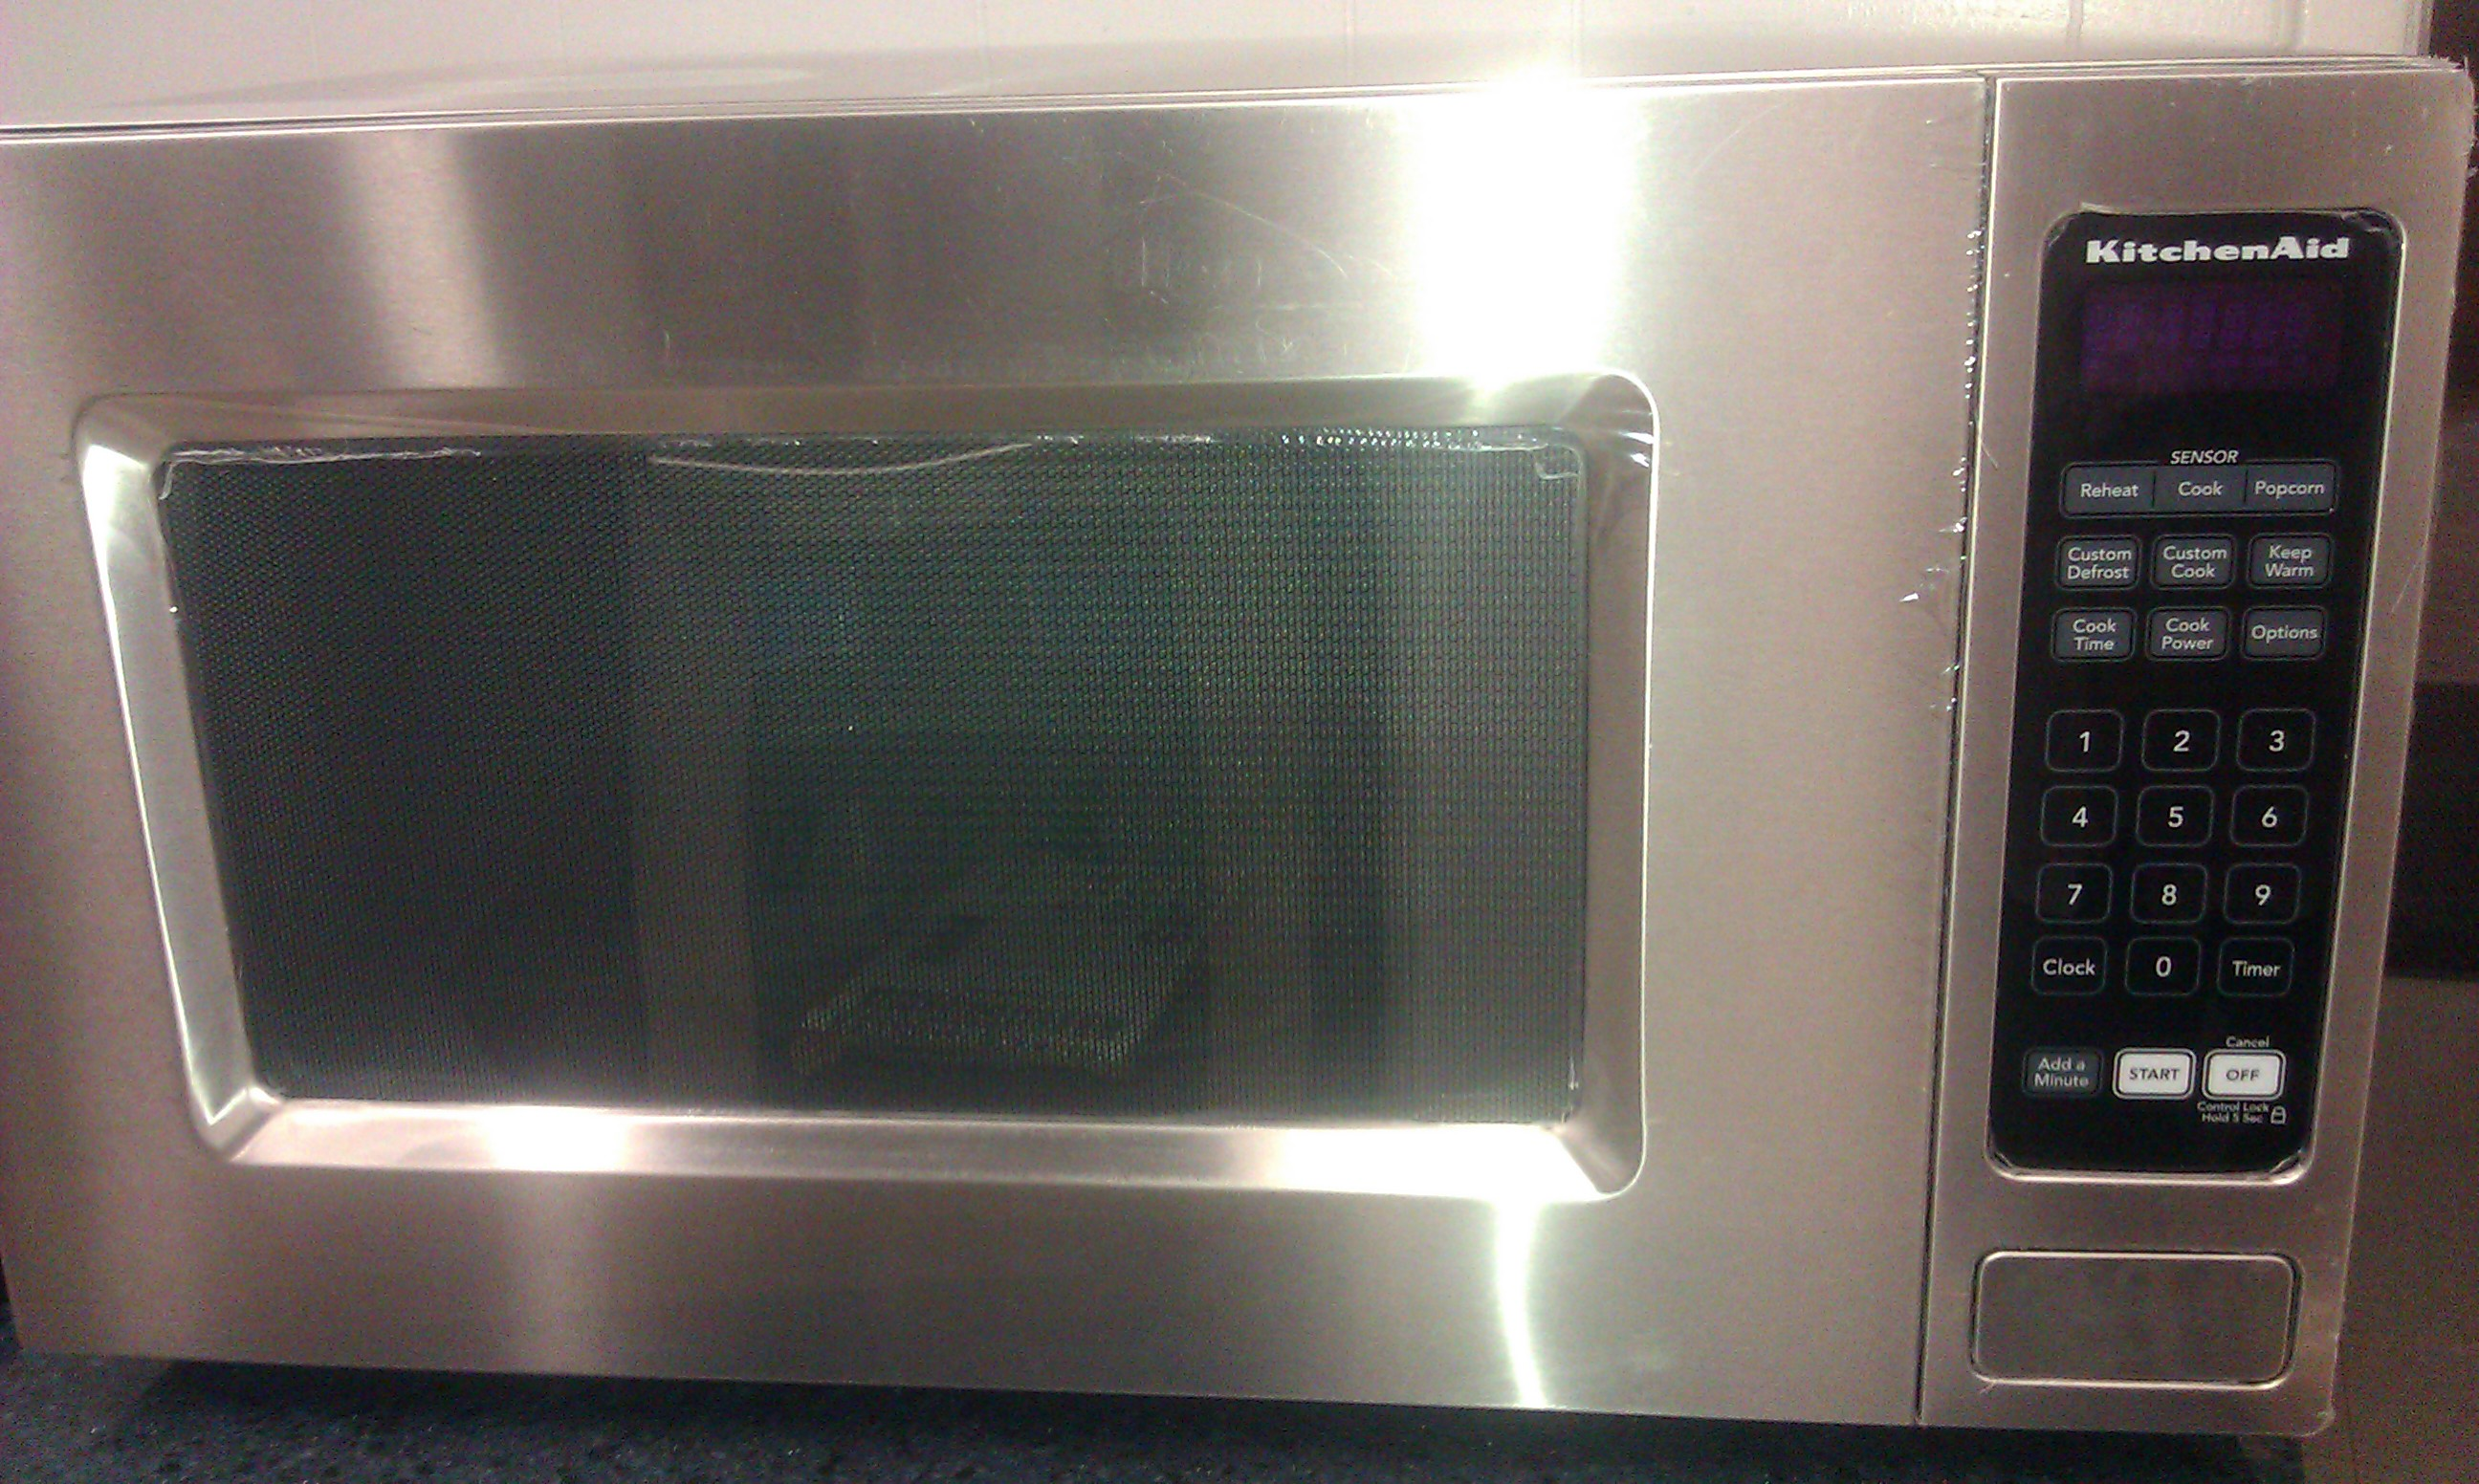 Kitchenaid microwave kitchenaid microwave used - Kitchenaid microwave ...